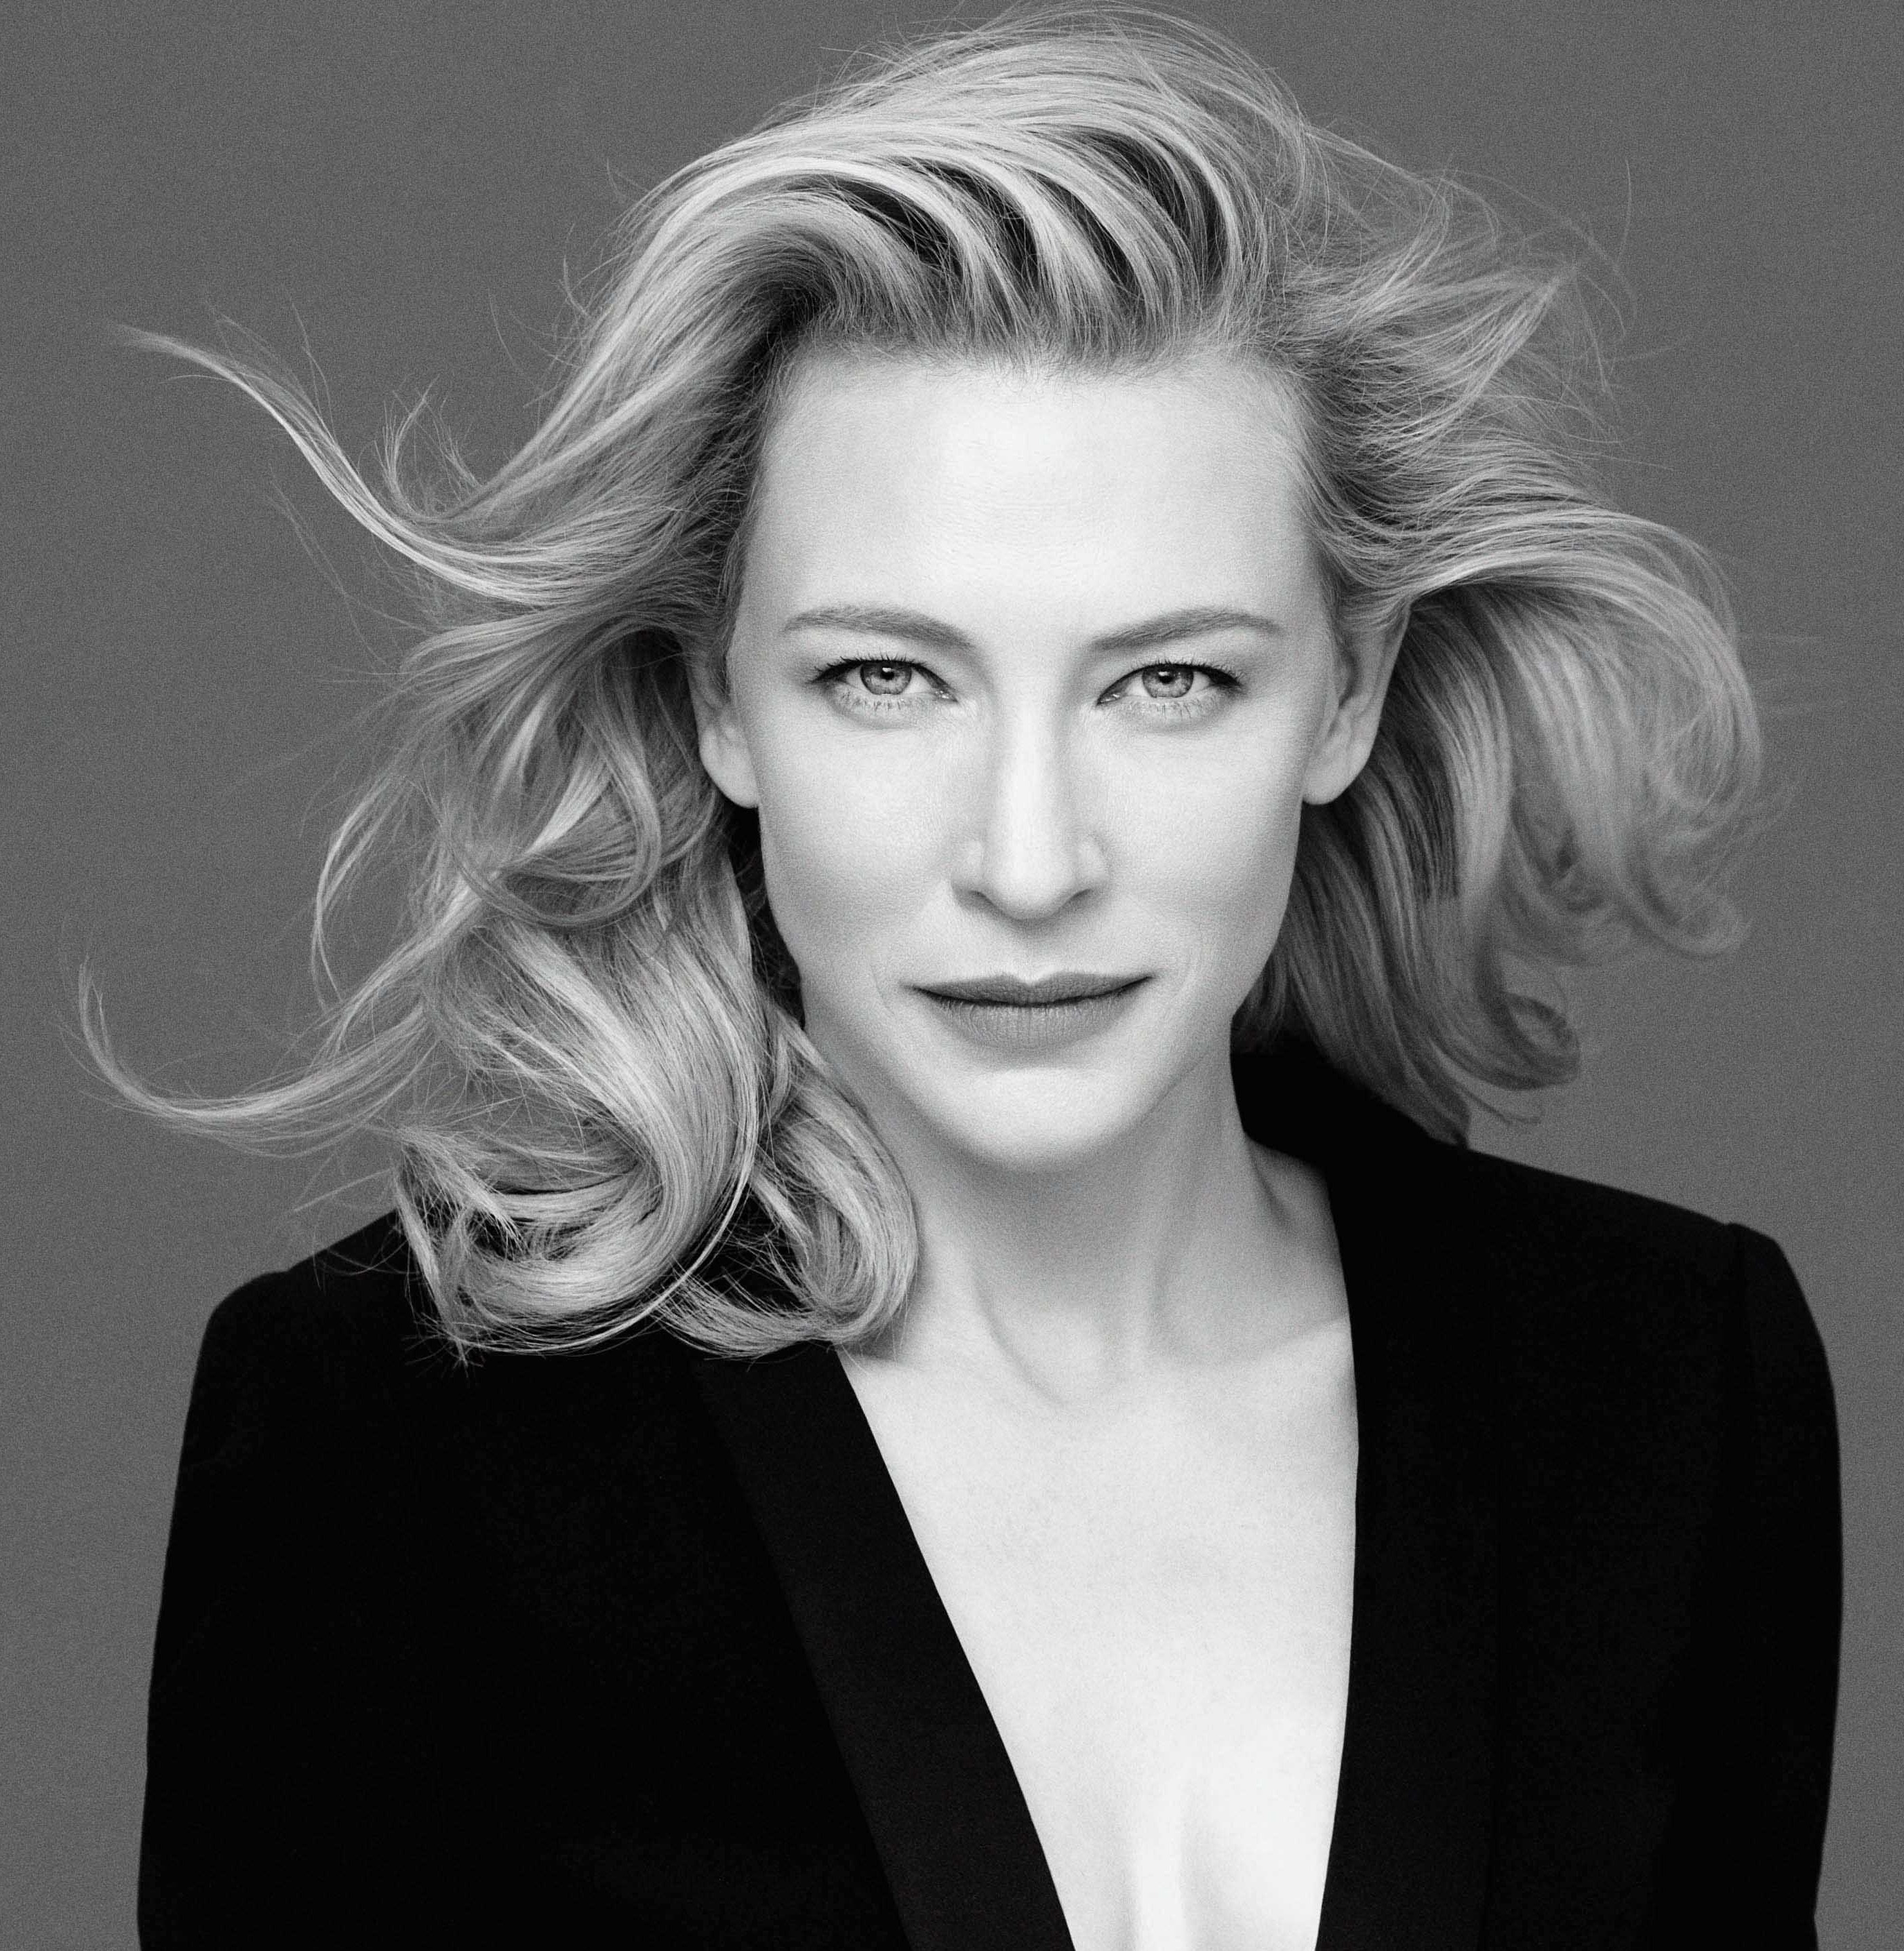 Cate Blanchett Has Had A Bisexual Past Cate Blanchett